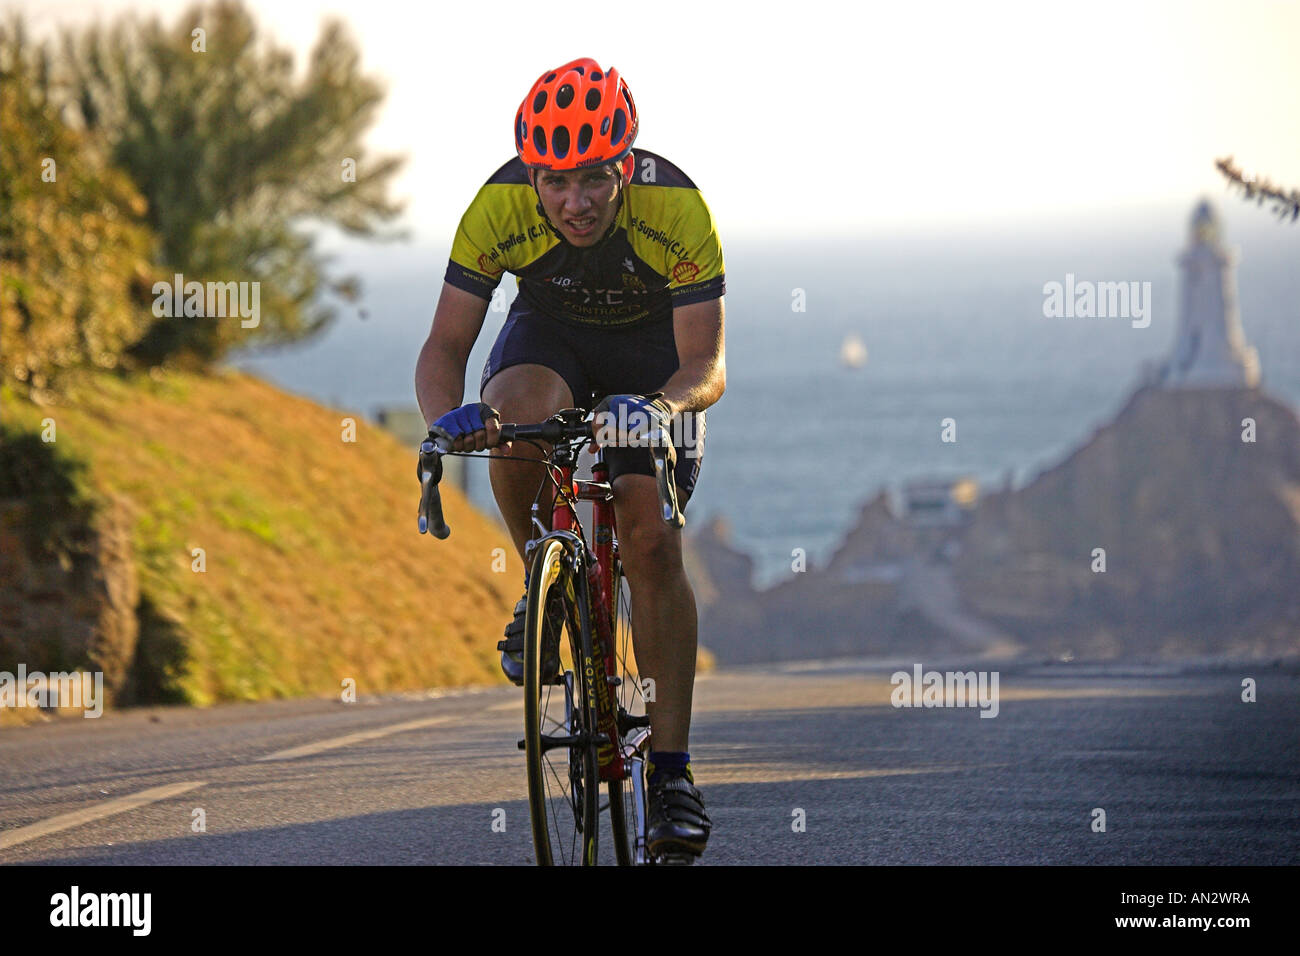 Great Britain UK GB Road Race Corbiere  With Corbiere Lighthouse   in the background - Stock Image